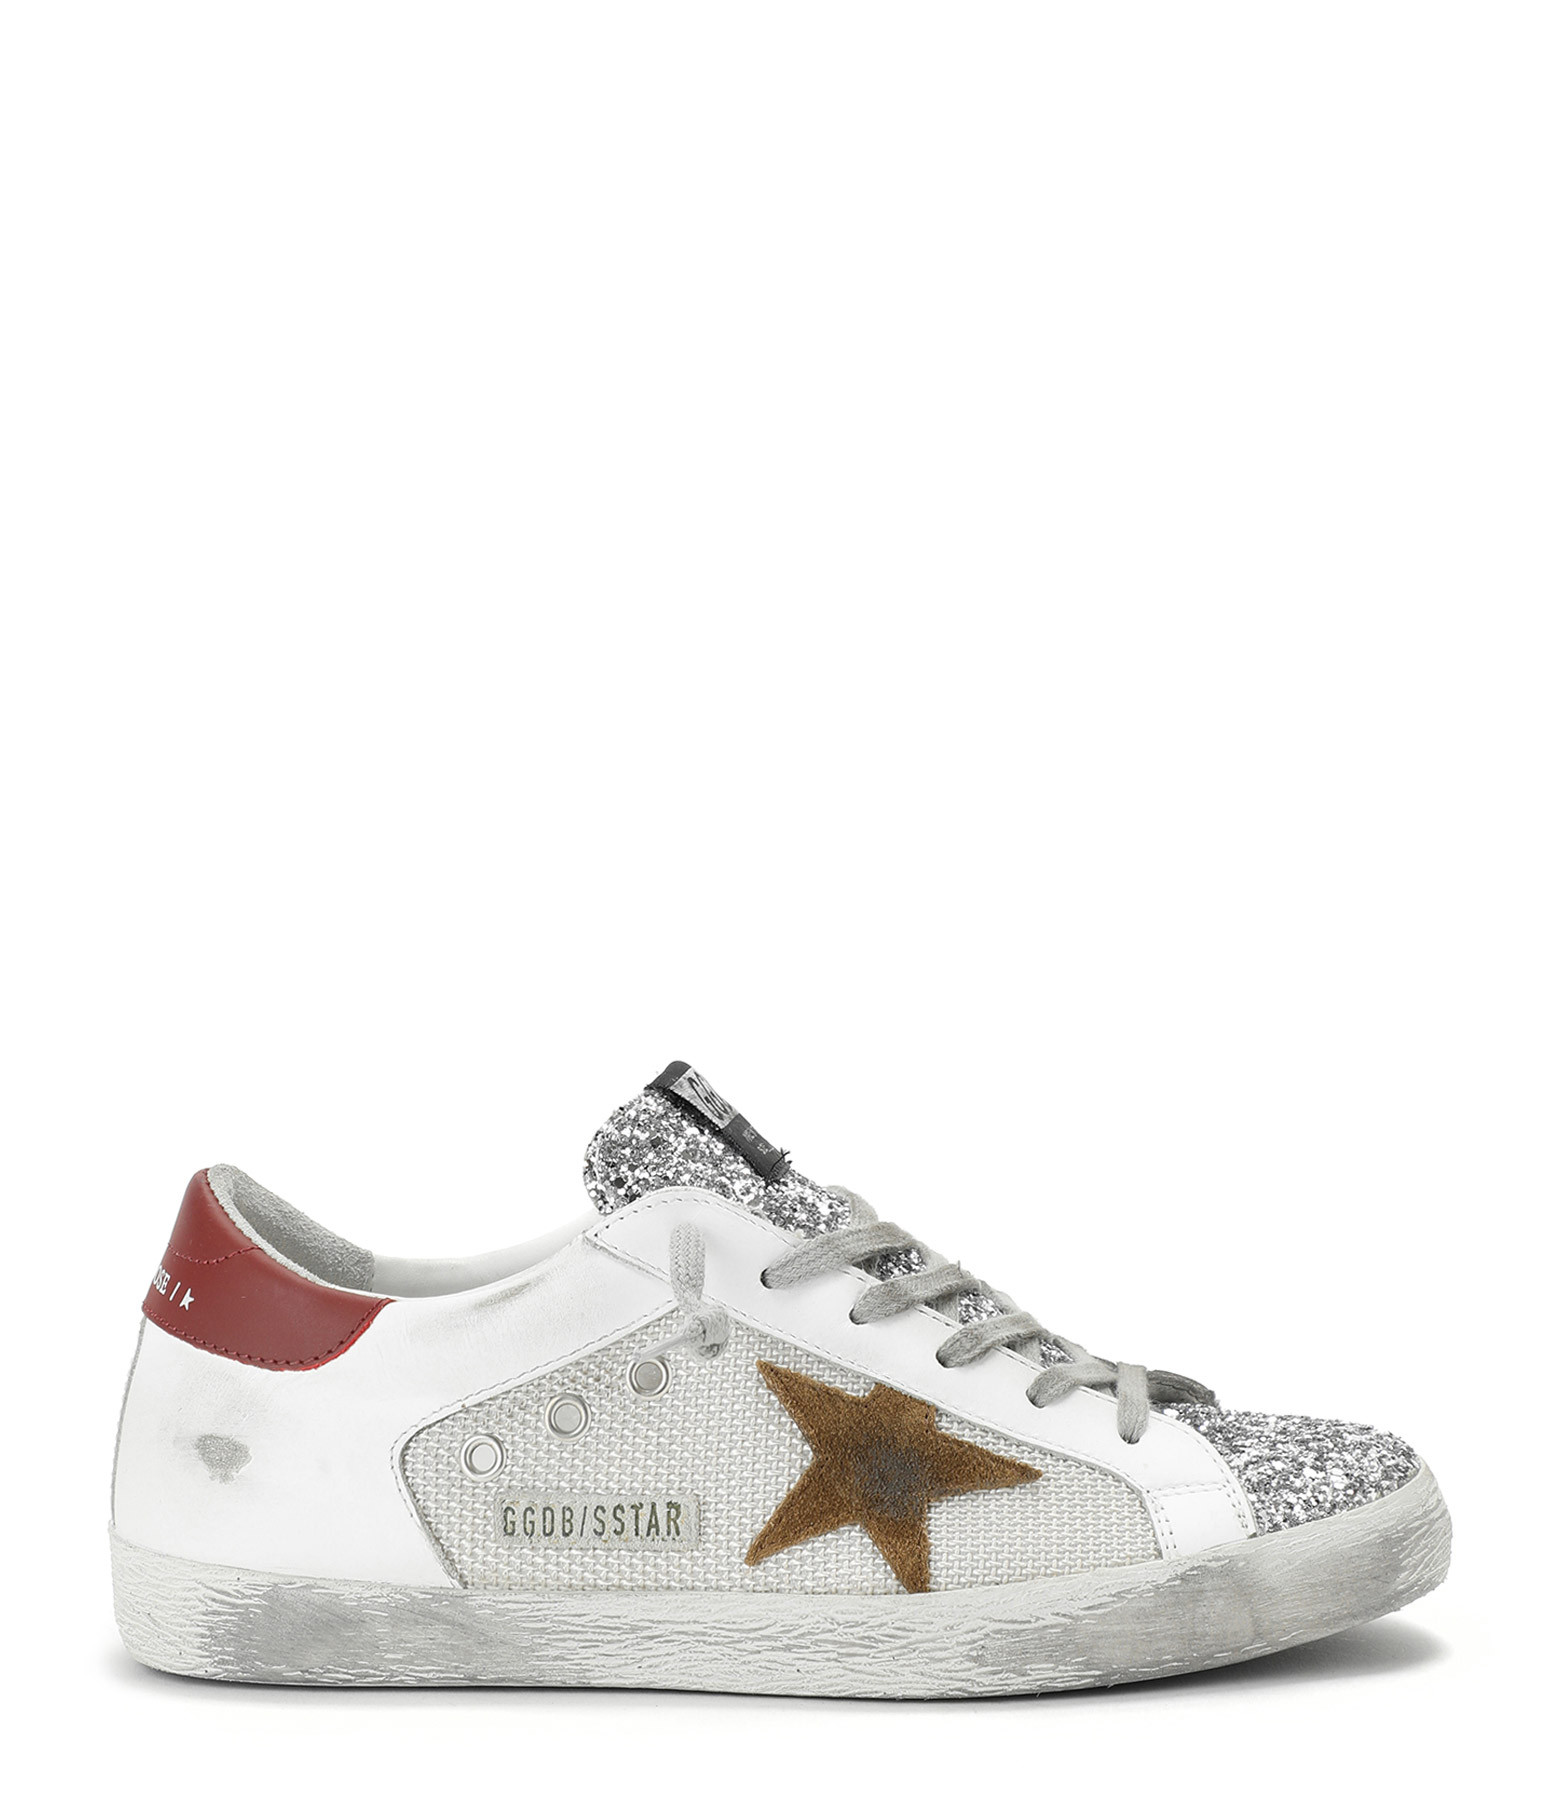 GOLDEN GOOSE - Baskets Superstar Cuir Suédé Glitter Tabac Rouge